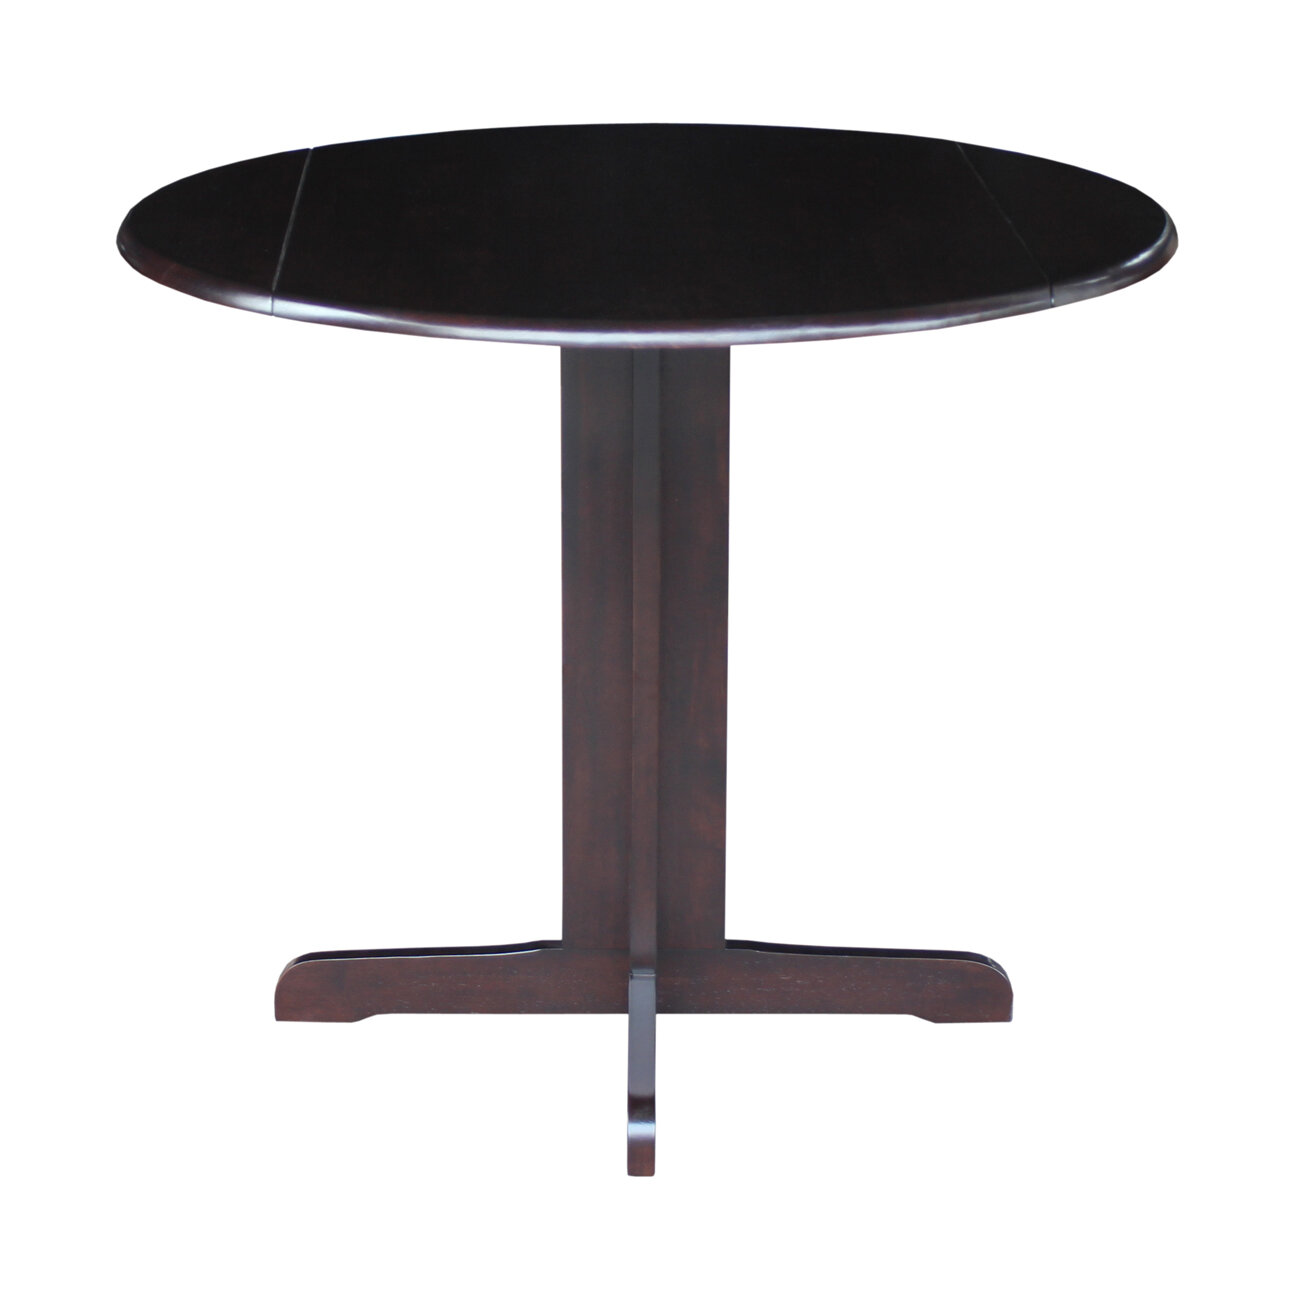 International Concepts Extendable Dining Table | eBay